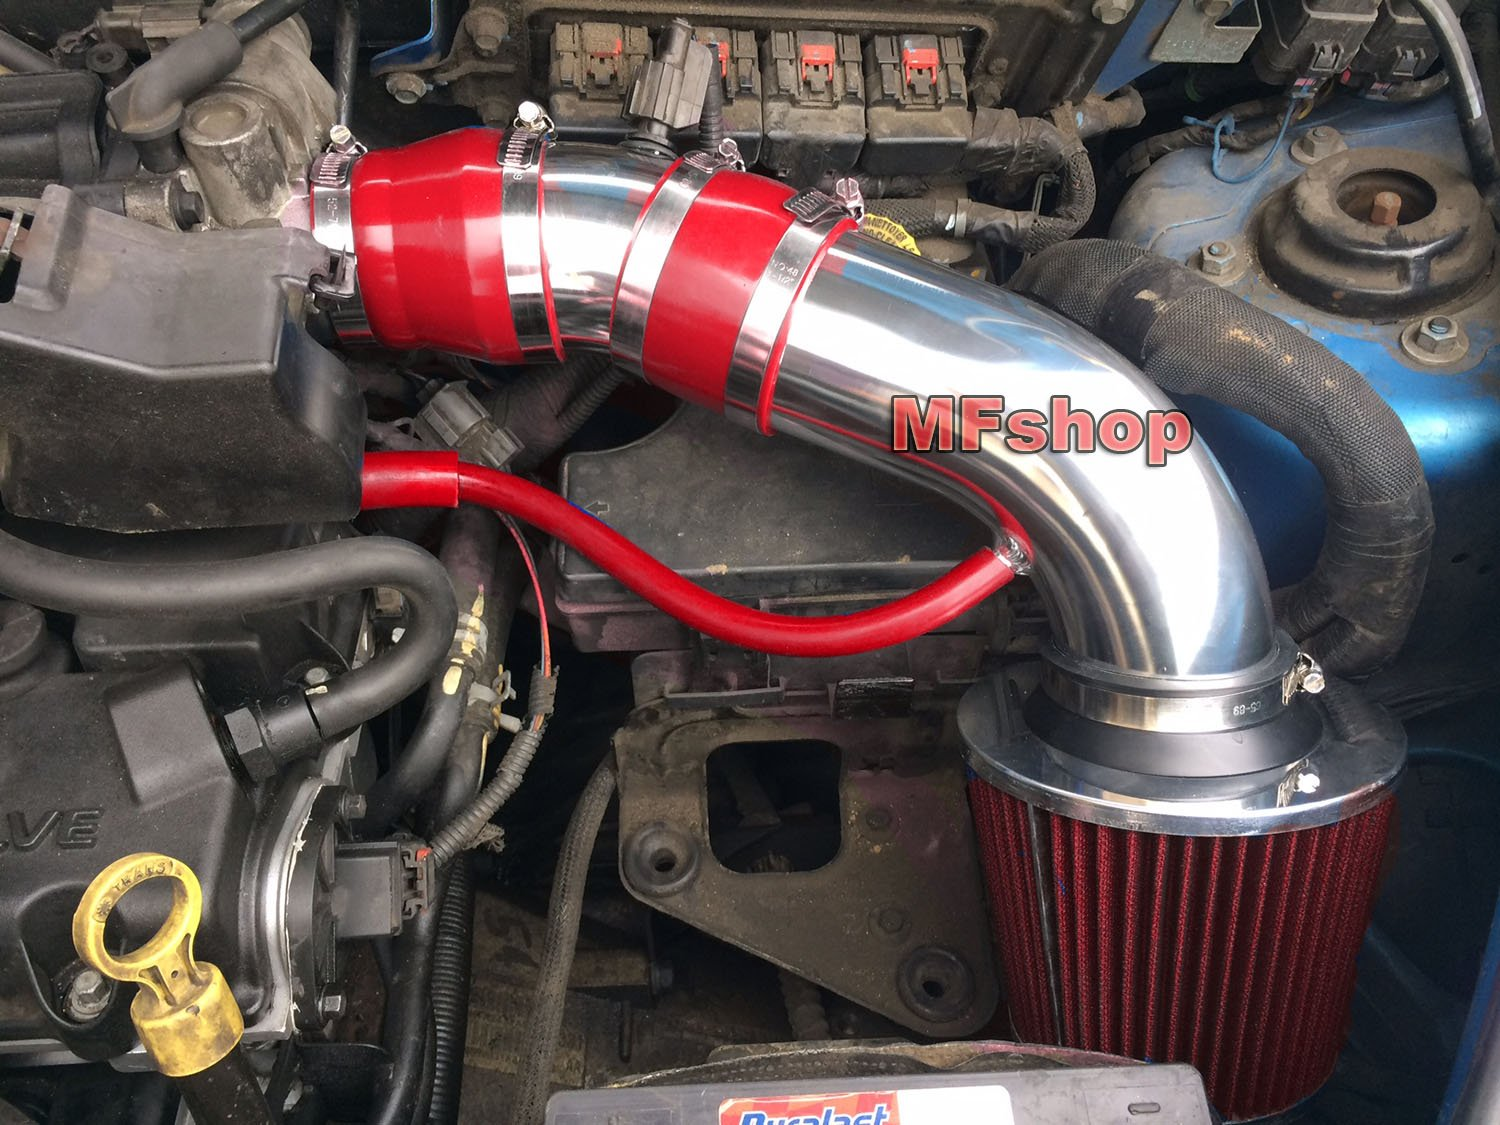 Amazon.com: 2001 2002 2003 2004 2005 2006 2007 2008 2009 Chrysler PT Cruiser  2.4L L4 Non-Turbo Air Intake Filter Kit System (Red Filter & Accessories):  ...